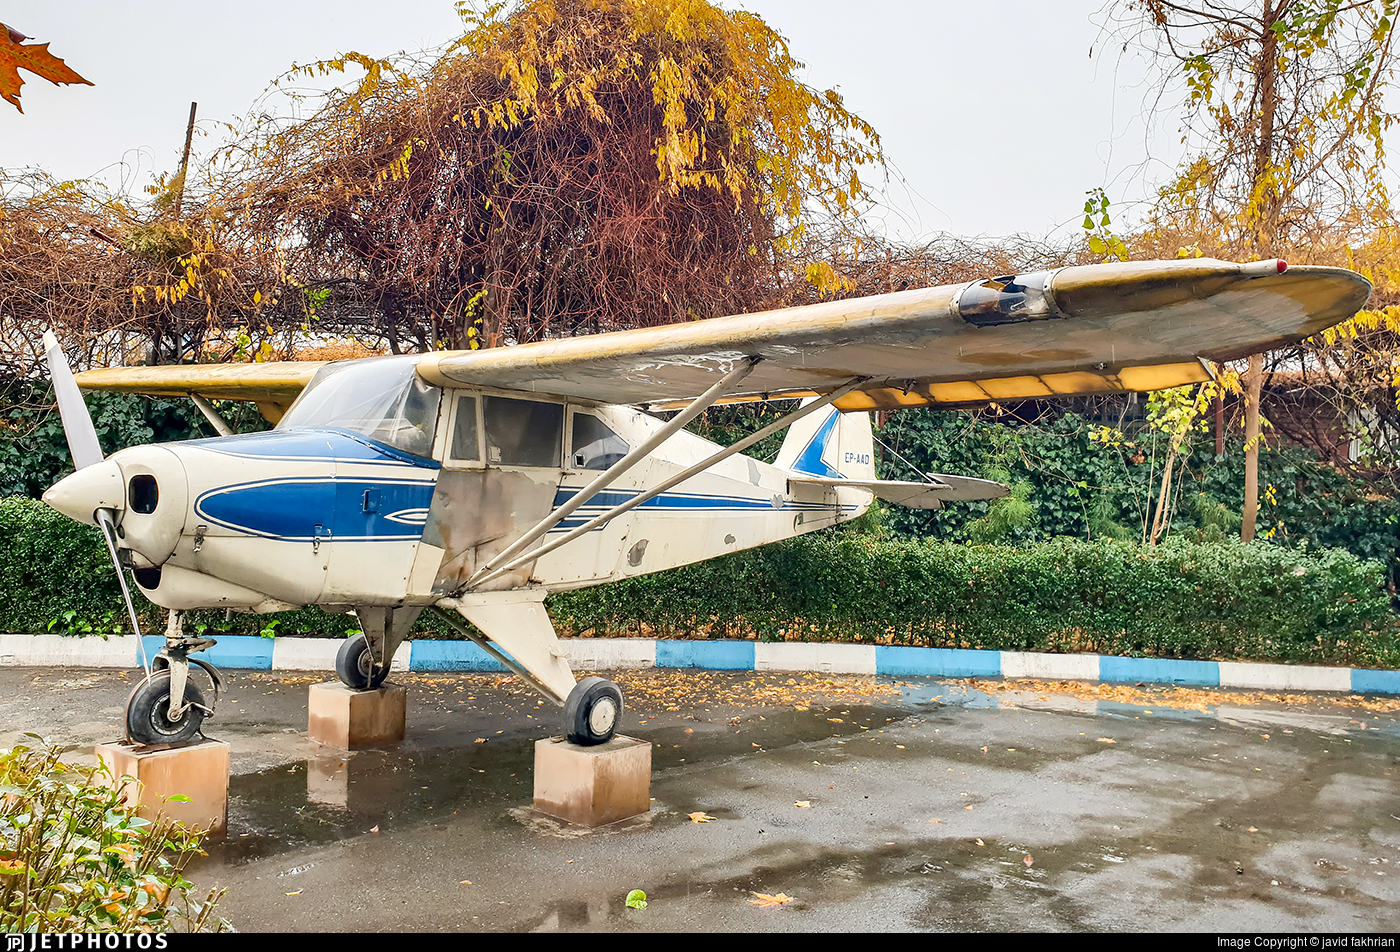 EP-AAD - Piper PA-22-150 Tri-Pacer - Iran Aseman Airlines